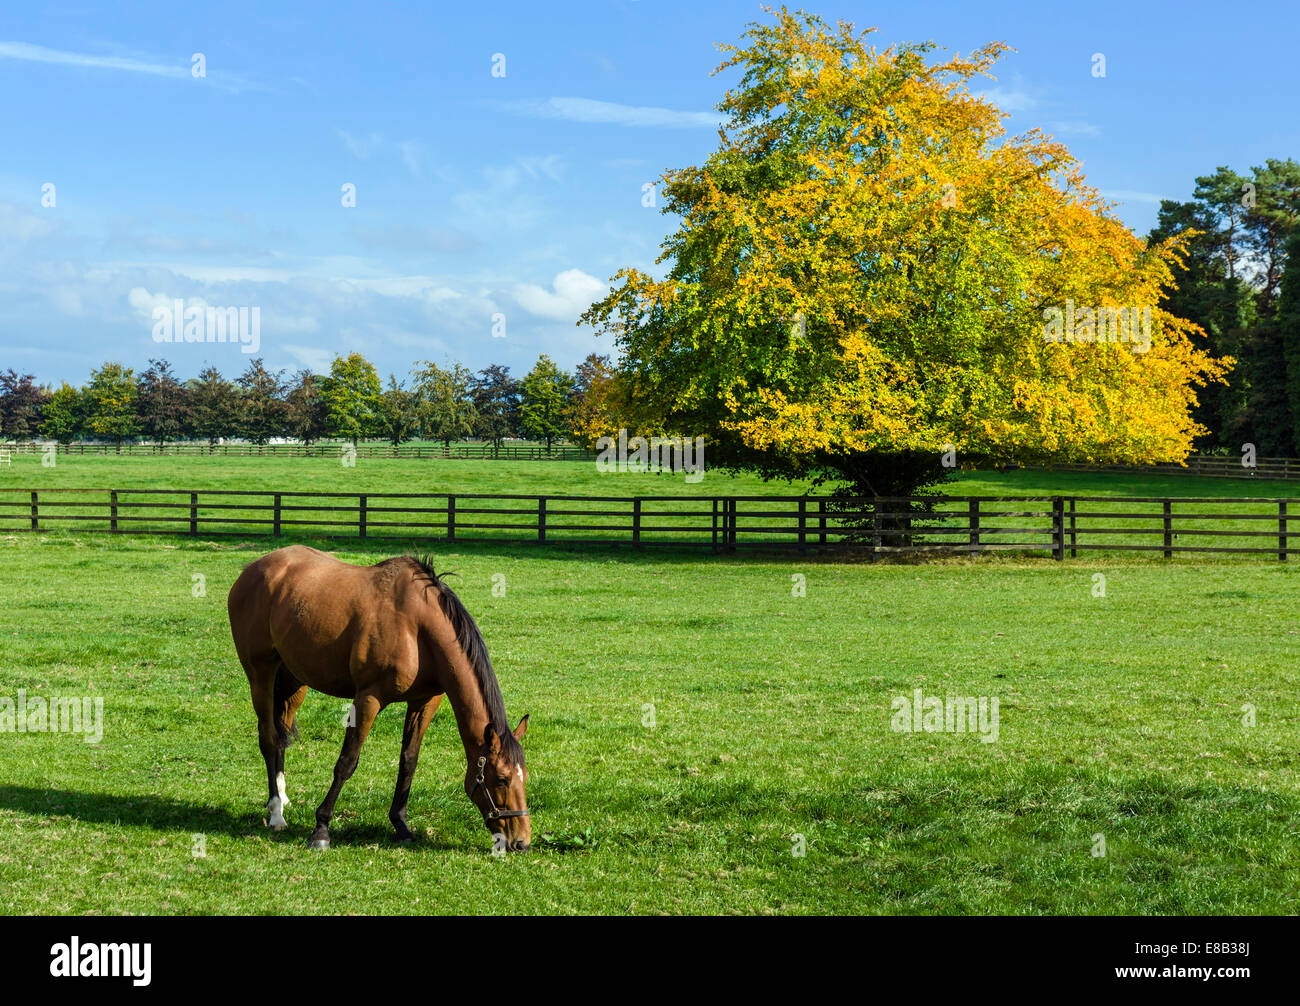 Horse at the Irish National Stud breeding facility, Tully, Kildare, County Kildare, Republic of Ireland - Stock Image